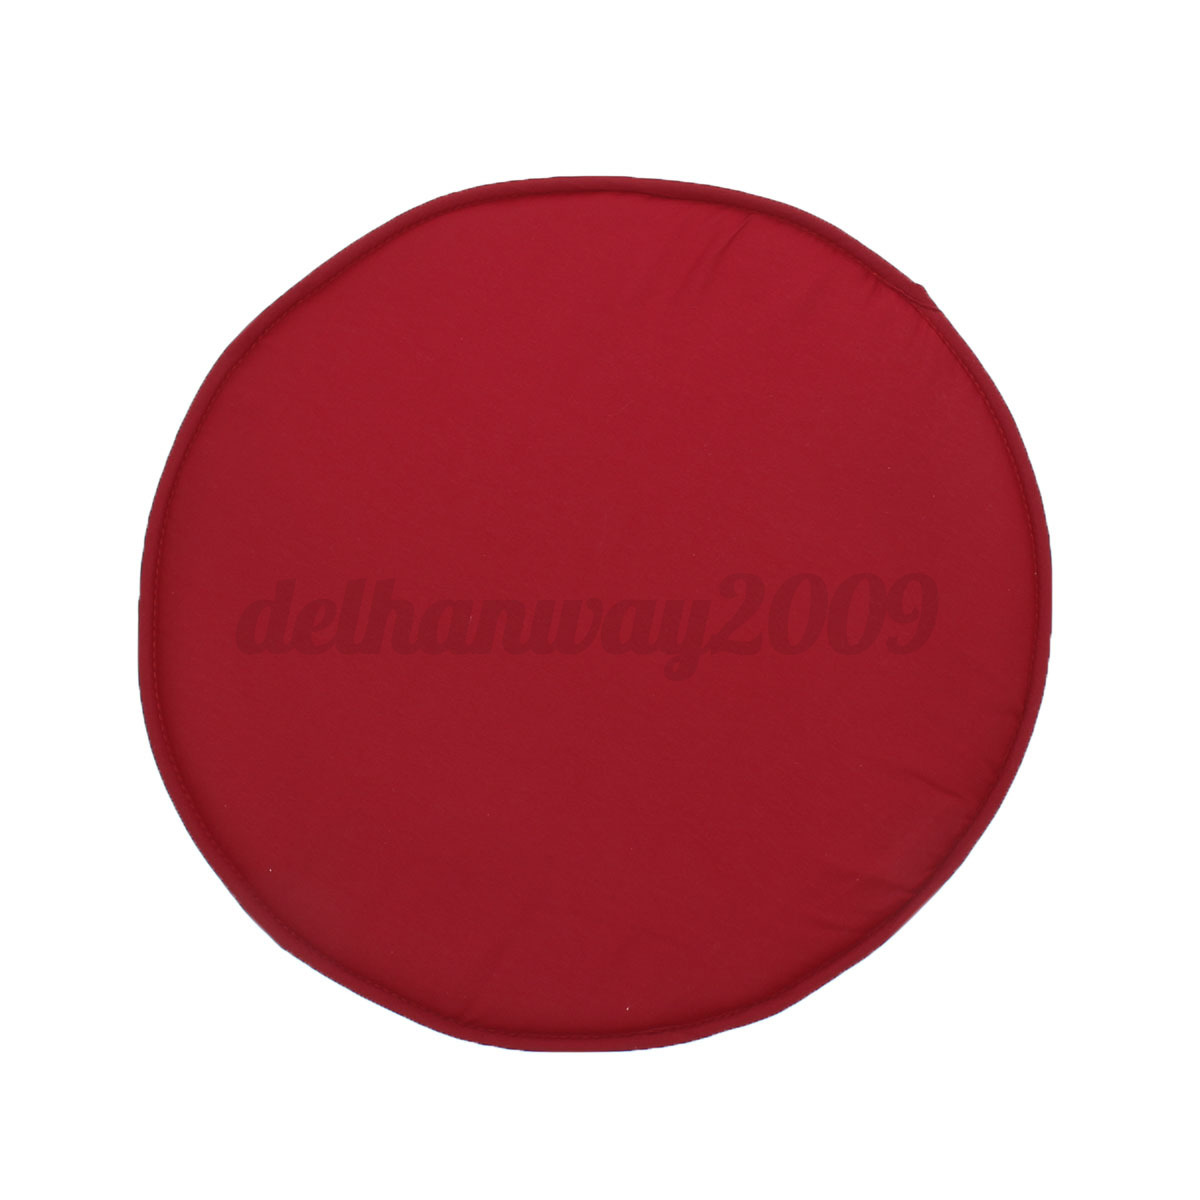 ROUND Bistro Office Home Chair Cushion SEAT PADS Kitchen  : F3824656C6979EE677529E97CD03CFC692CD529E46CF039BCF03D2219AC643C9D29AC76323CBD213999BCBD243CD56739ACC3663CB039C839DCBF51303 from www.ebay.co.uk size 1200 x 1200 jpeg 88kB